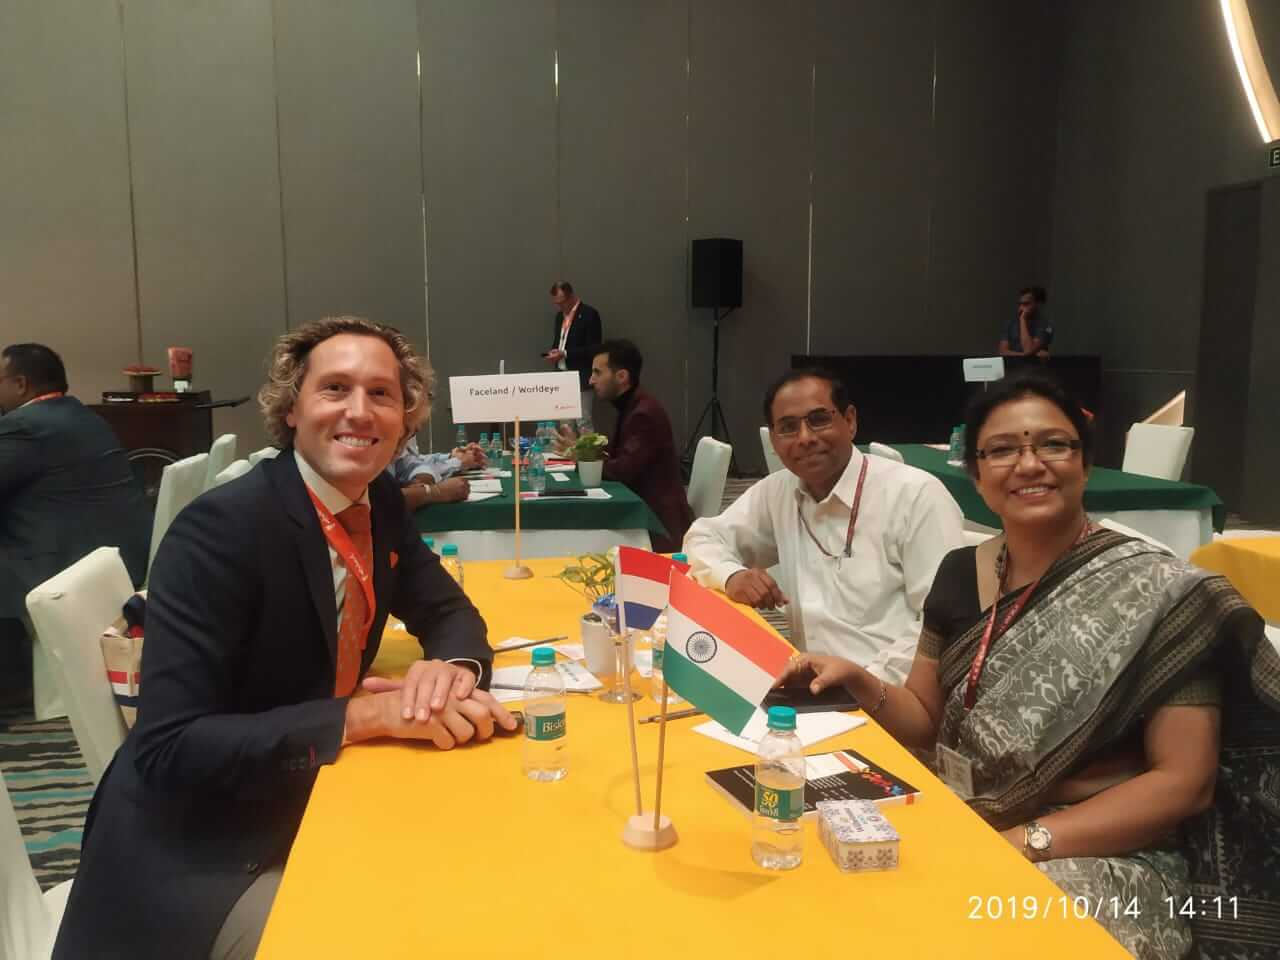 B2B meeting with Faceland representative Bart and AIIMS representatives at the summit organised by CII in collaboration with the Netherlands